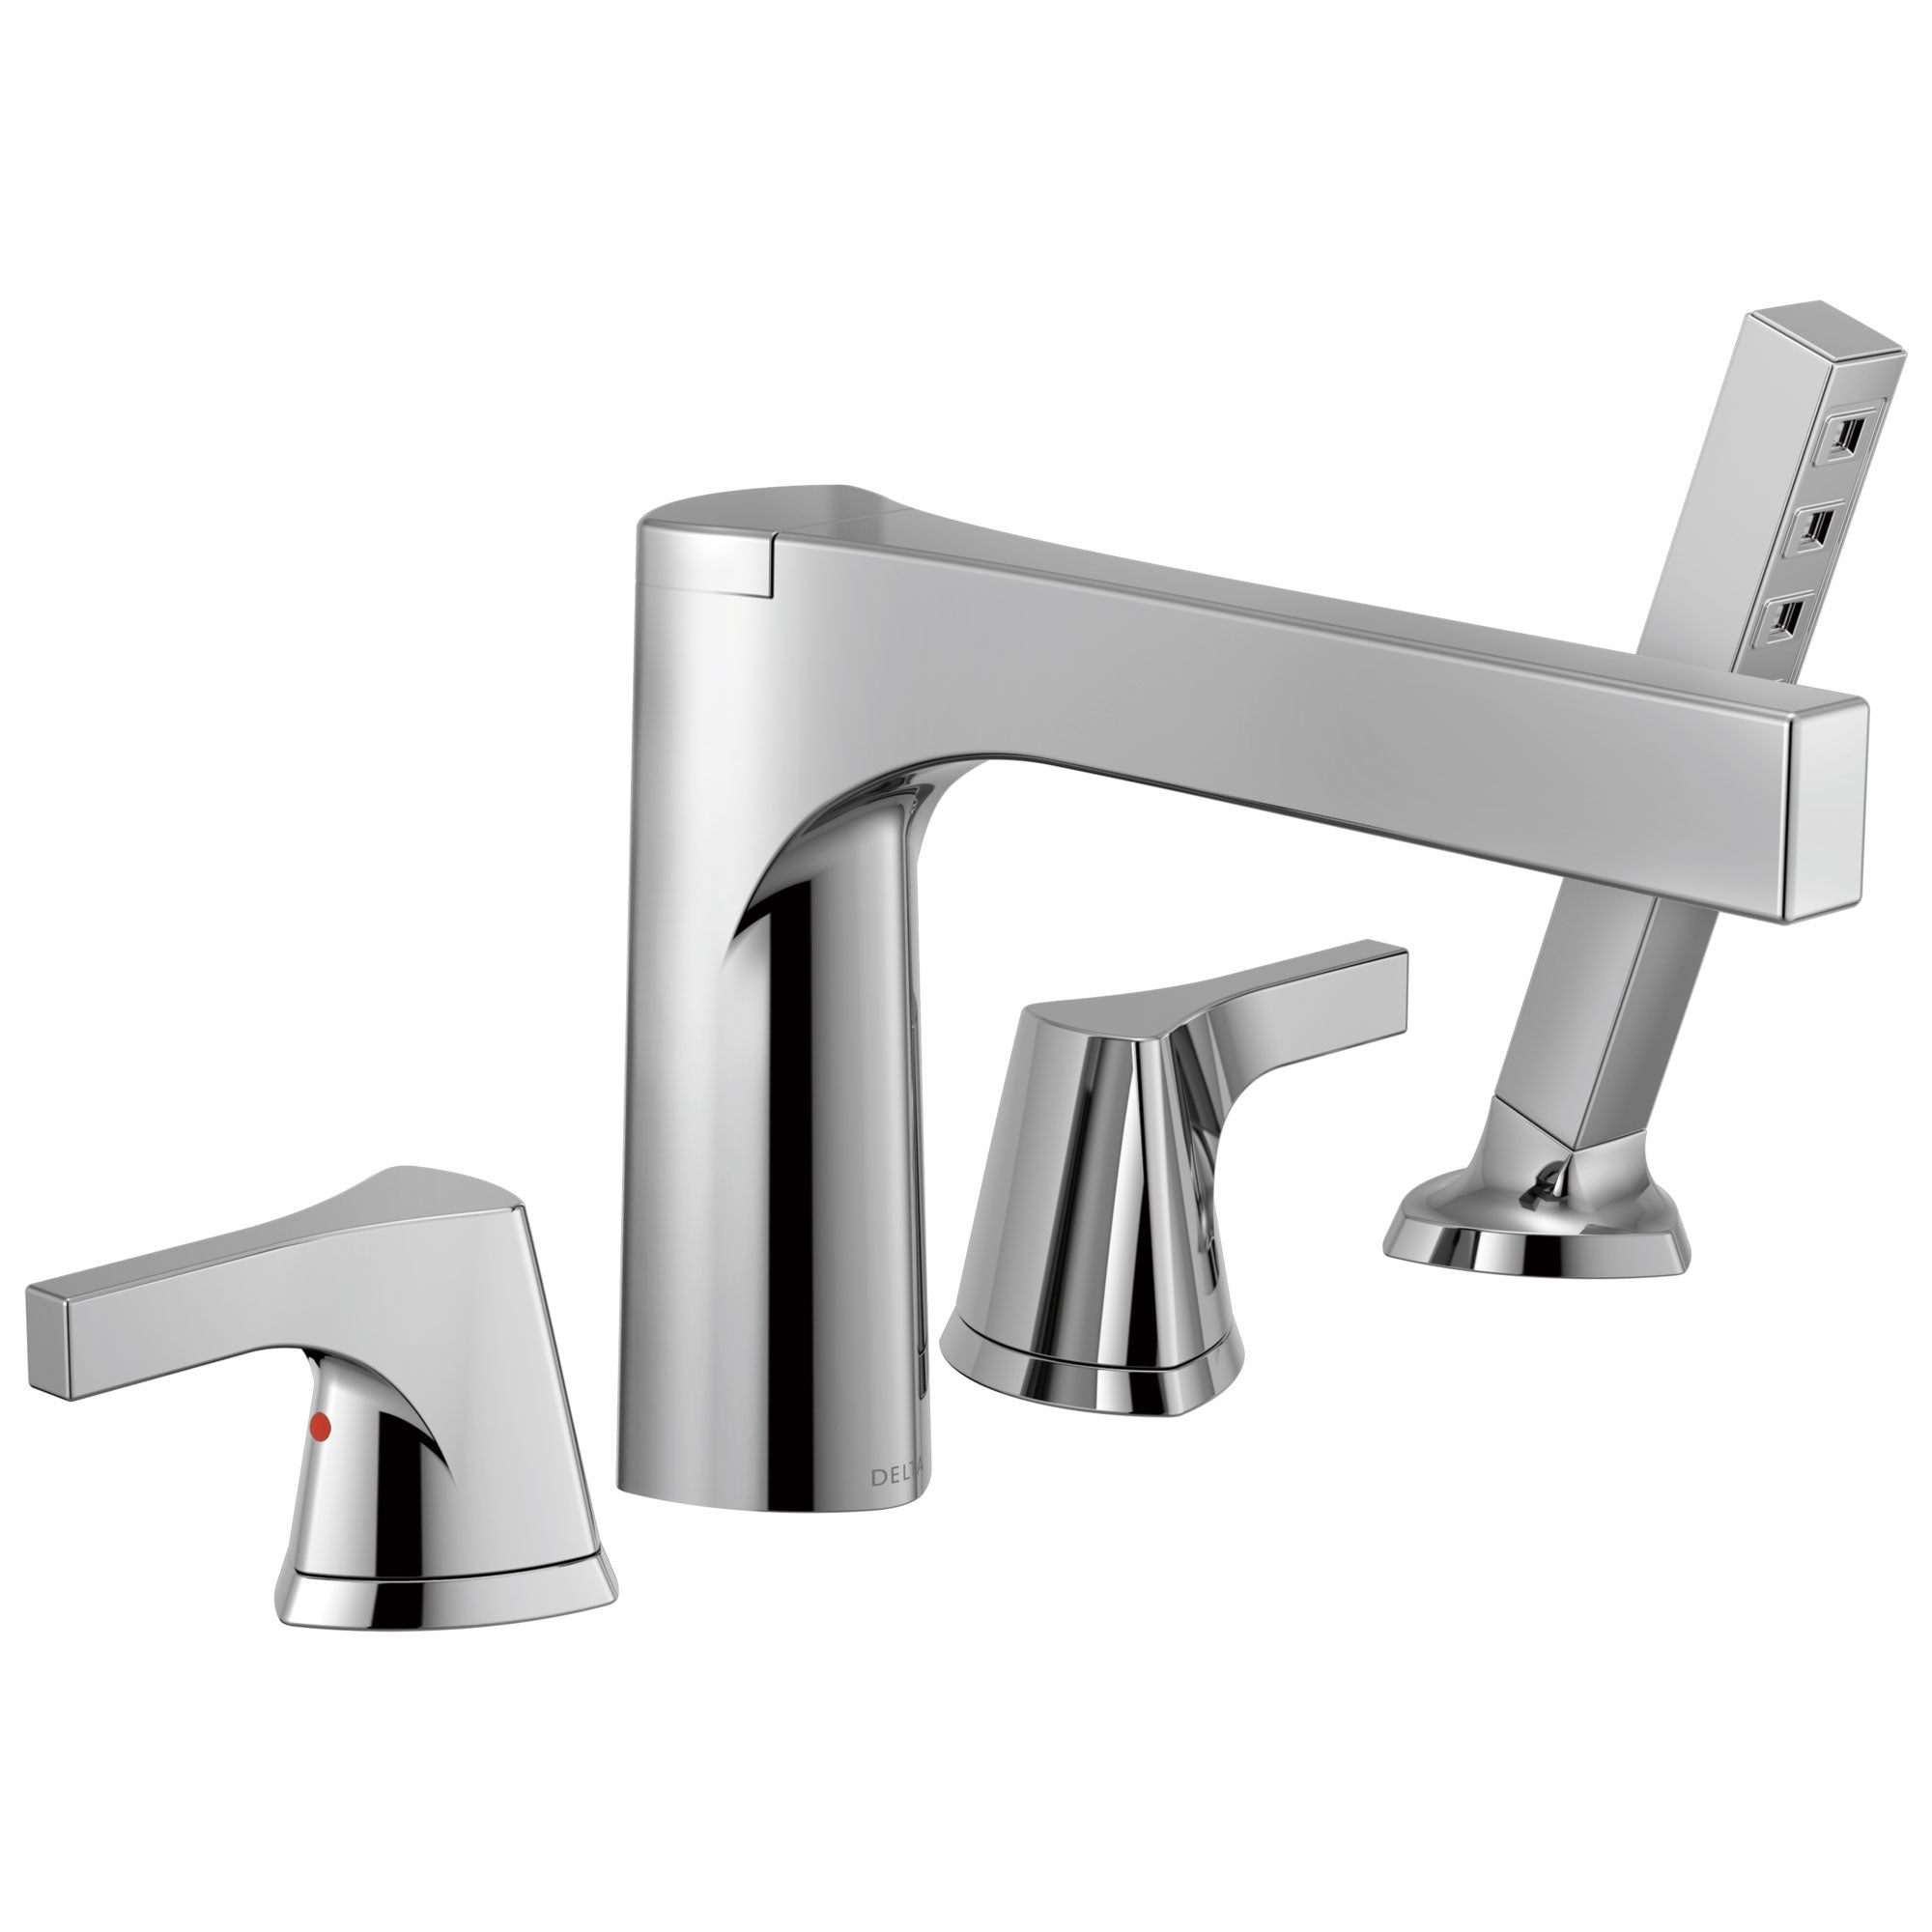 Delta Zura Collection Chrome Finish 4 Hole Roman Tub Filler Faucet